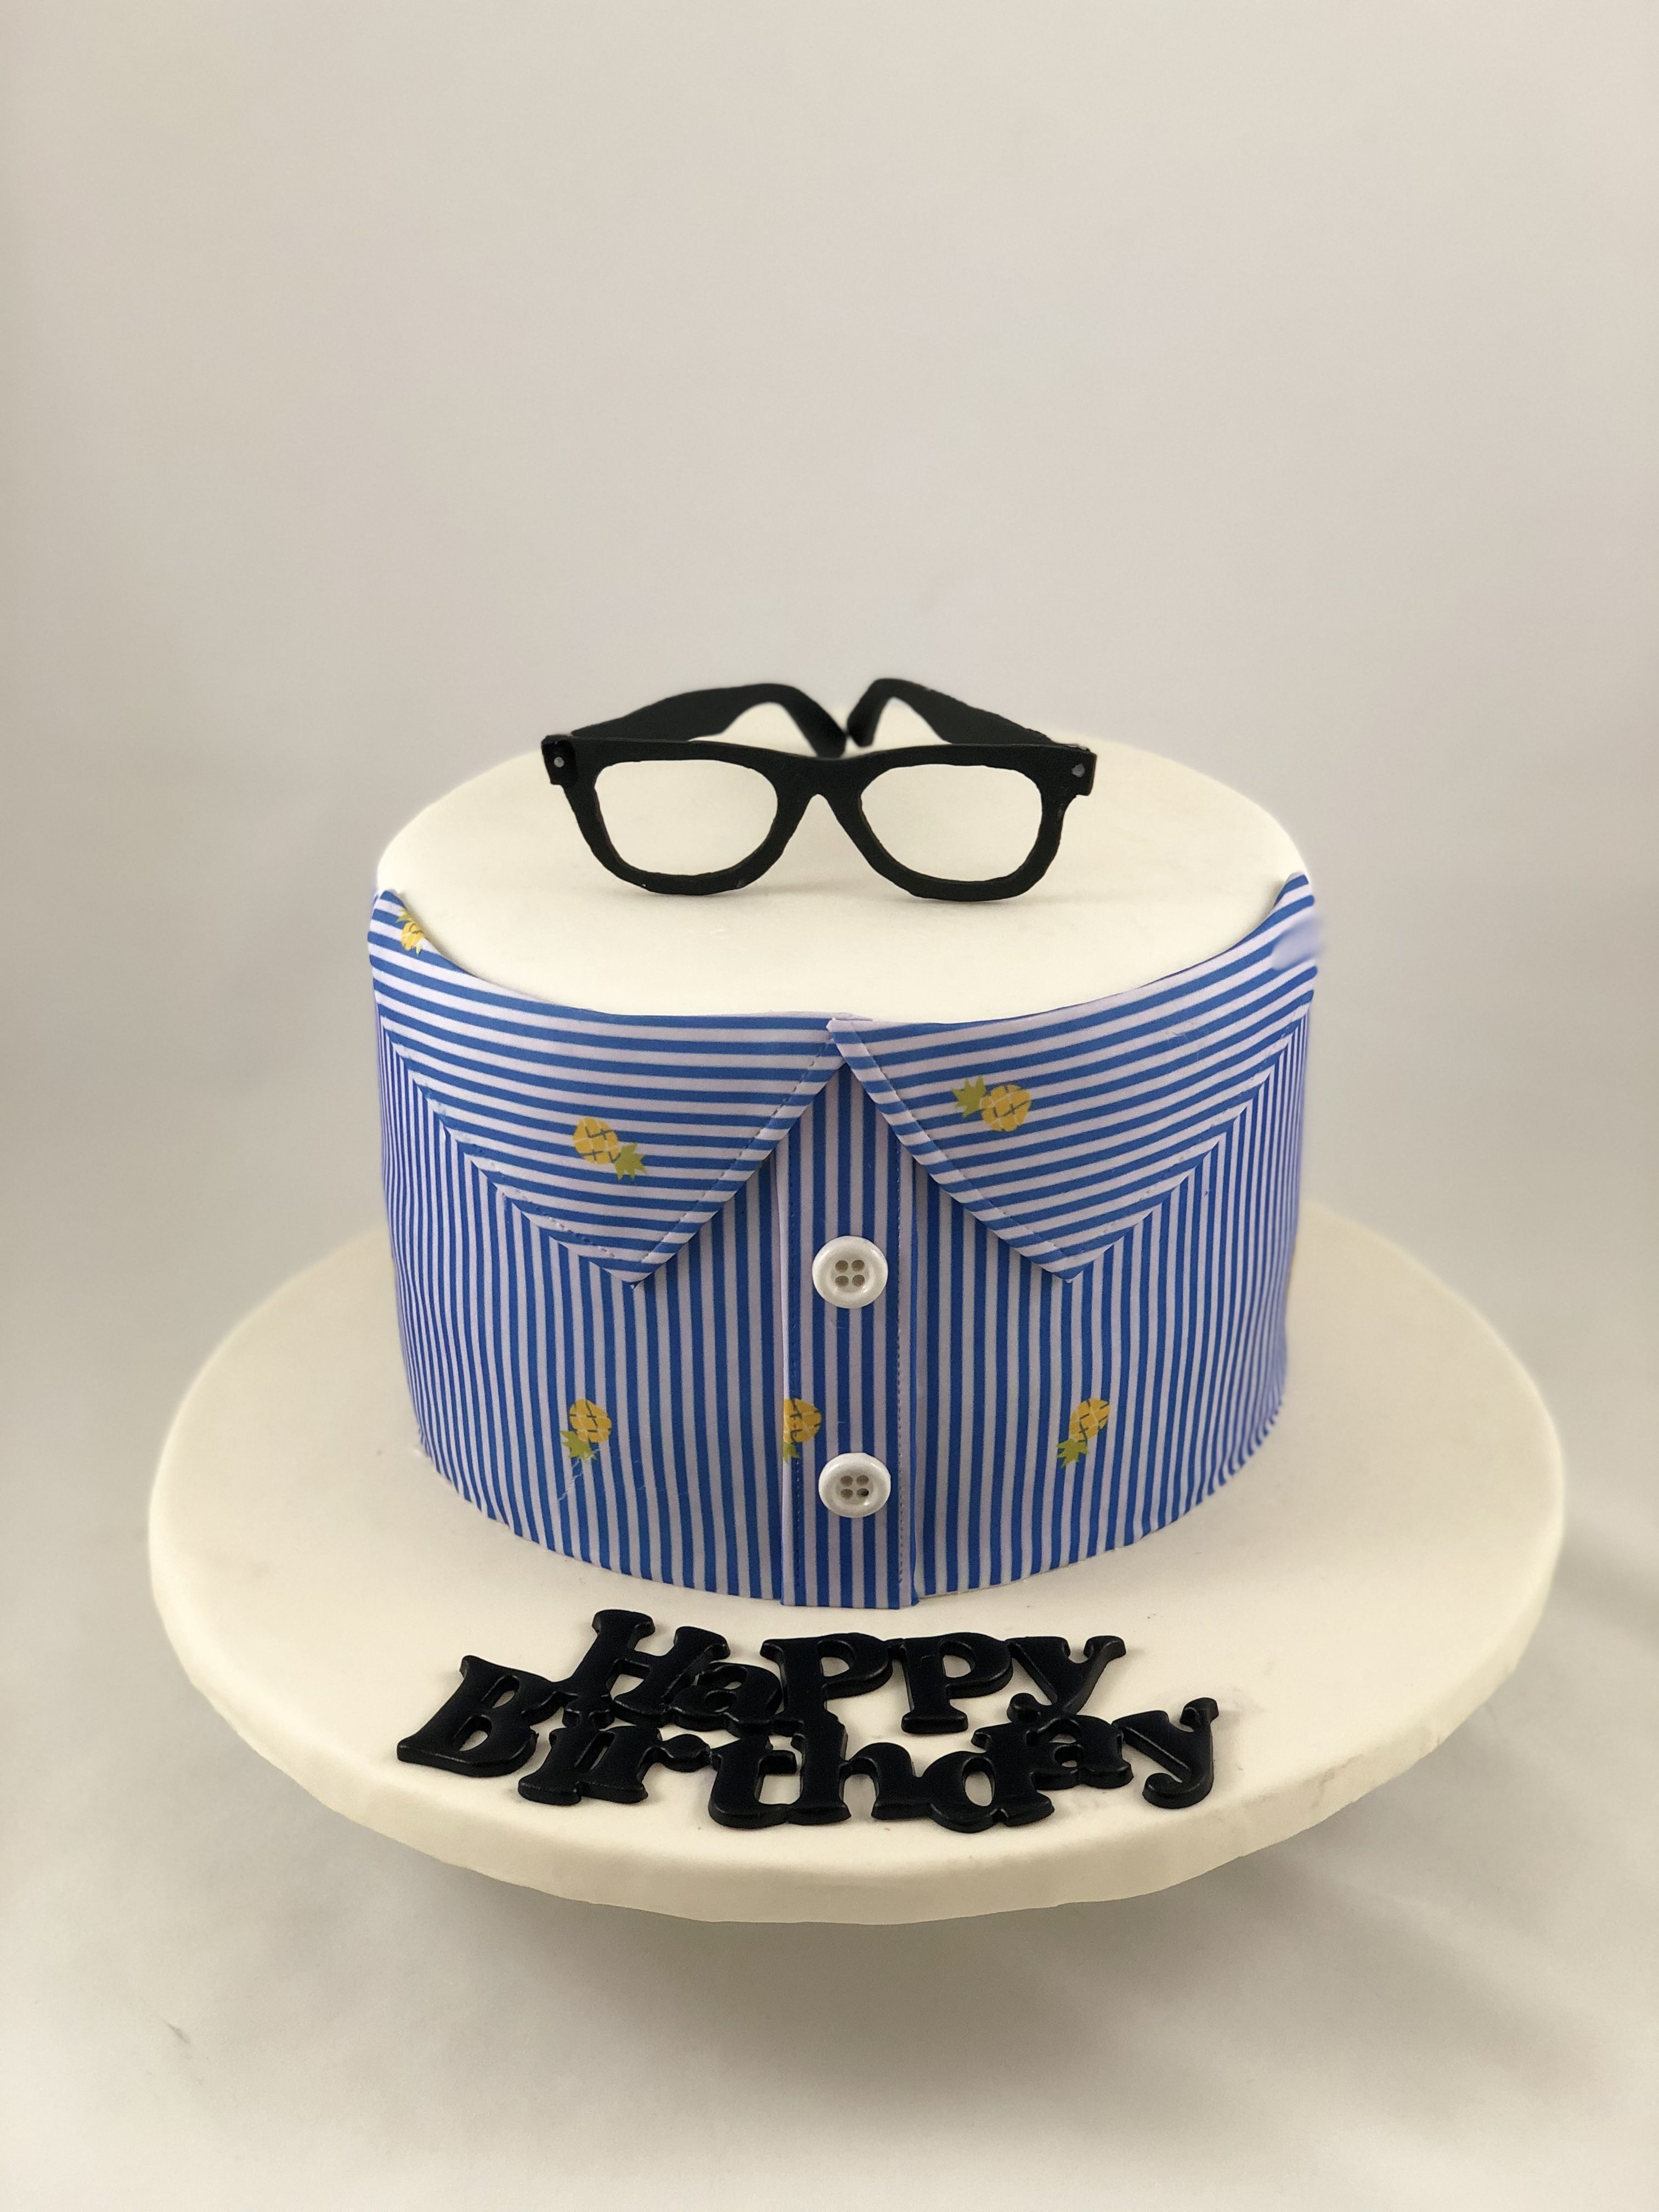 Remarkable Shirt And Glasses Cake With Images Birthday Cake For Him Cake Personalised Birthday Cards Veneteletsinfo